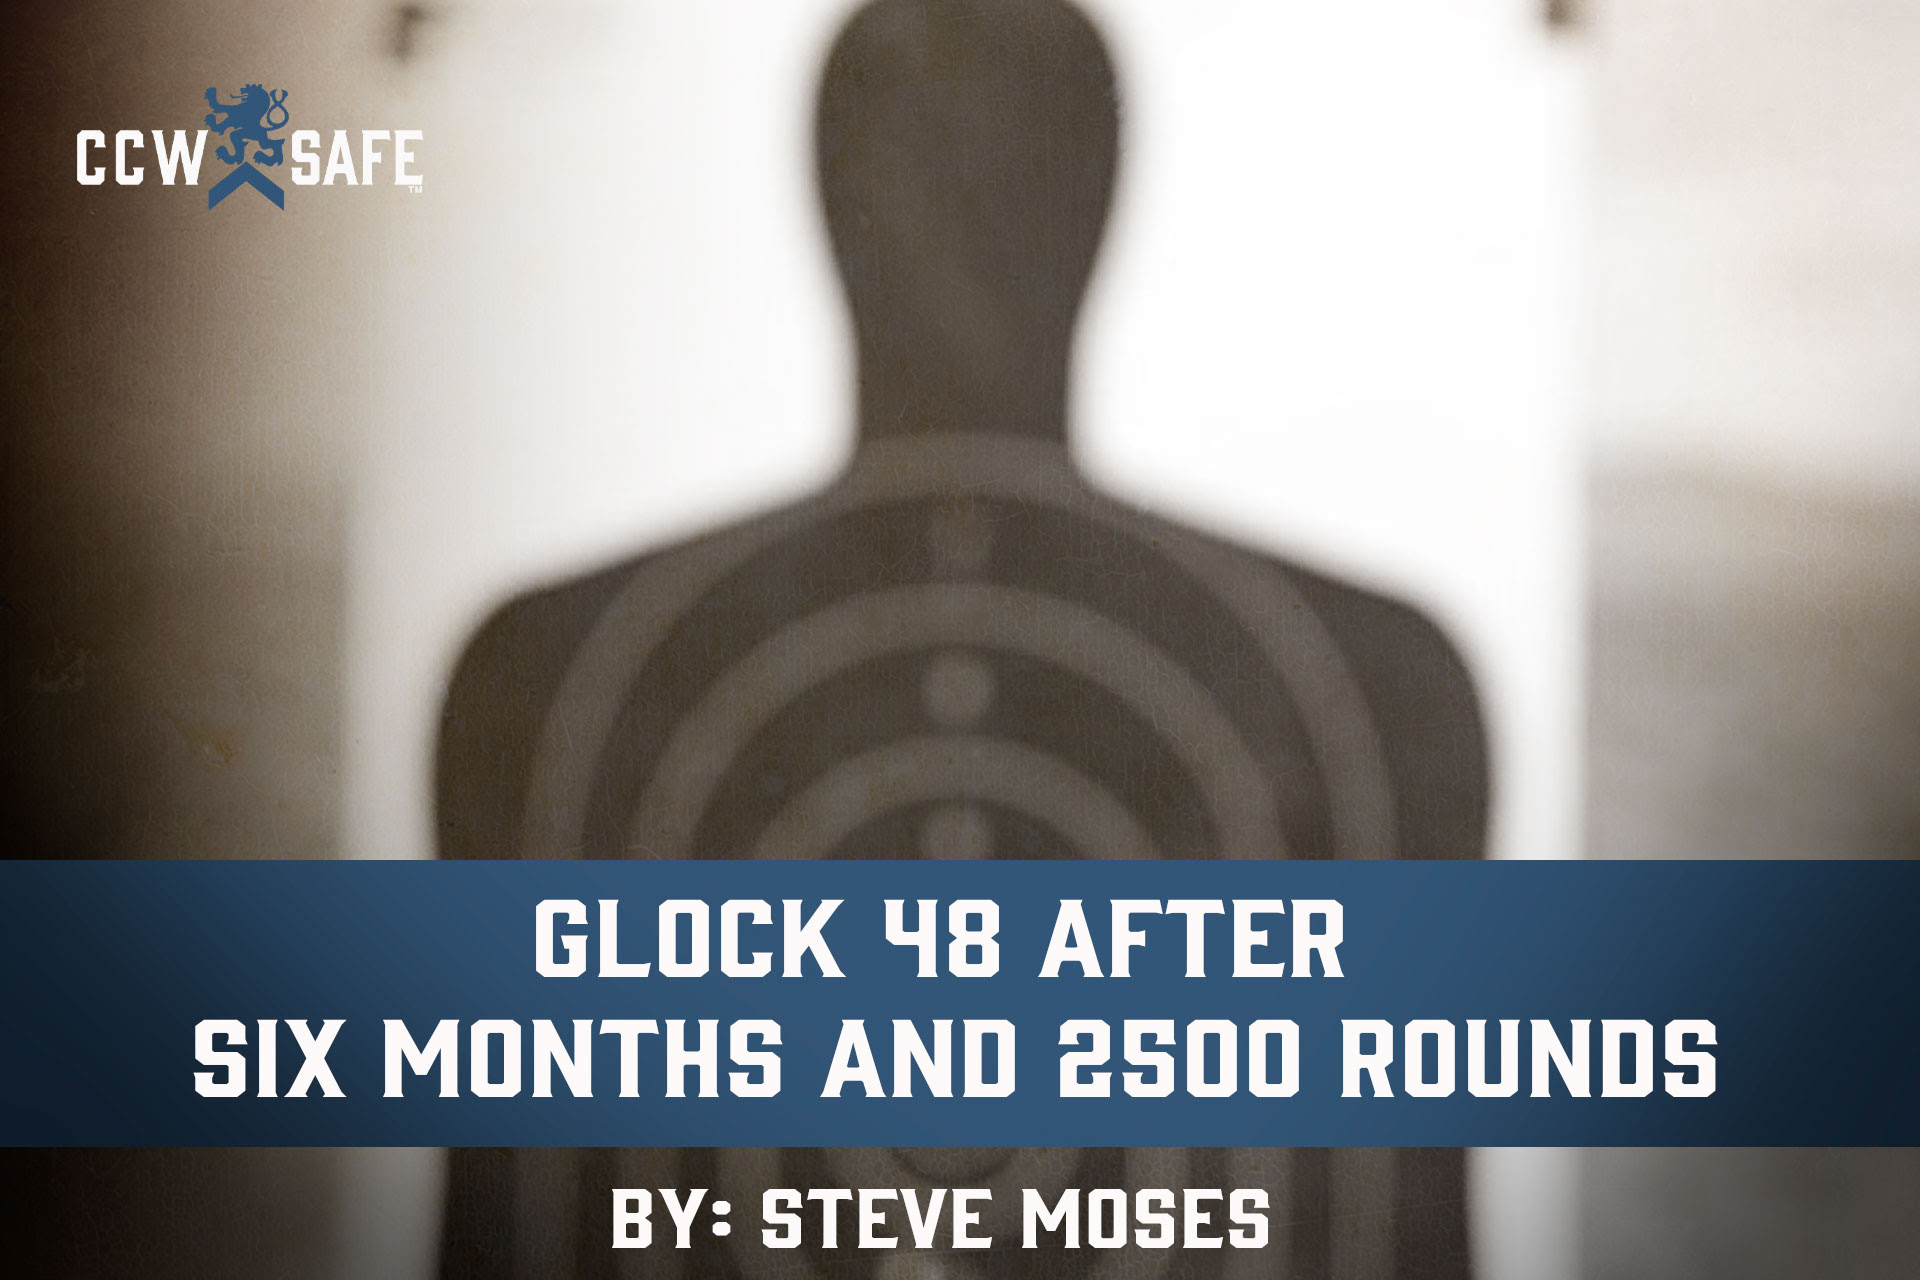 CCW-SAFE -> GLOCK 48 AFTER SIX MONTHS AND 2500 ROUNDS